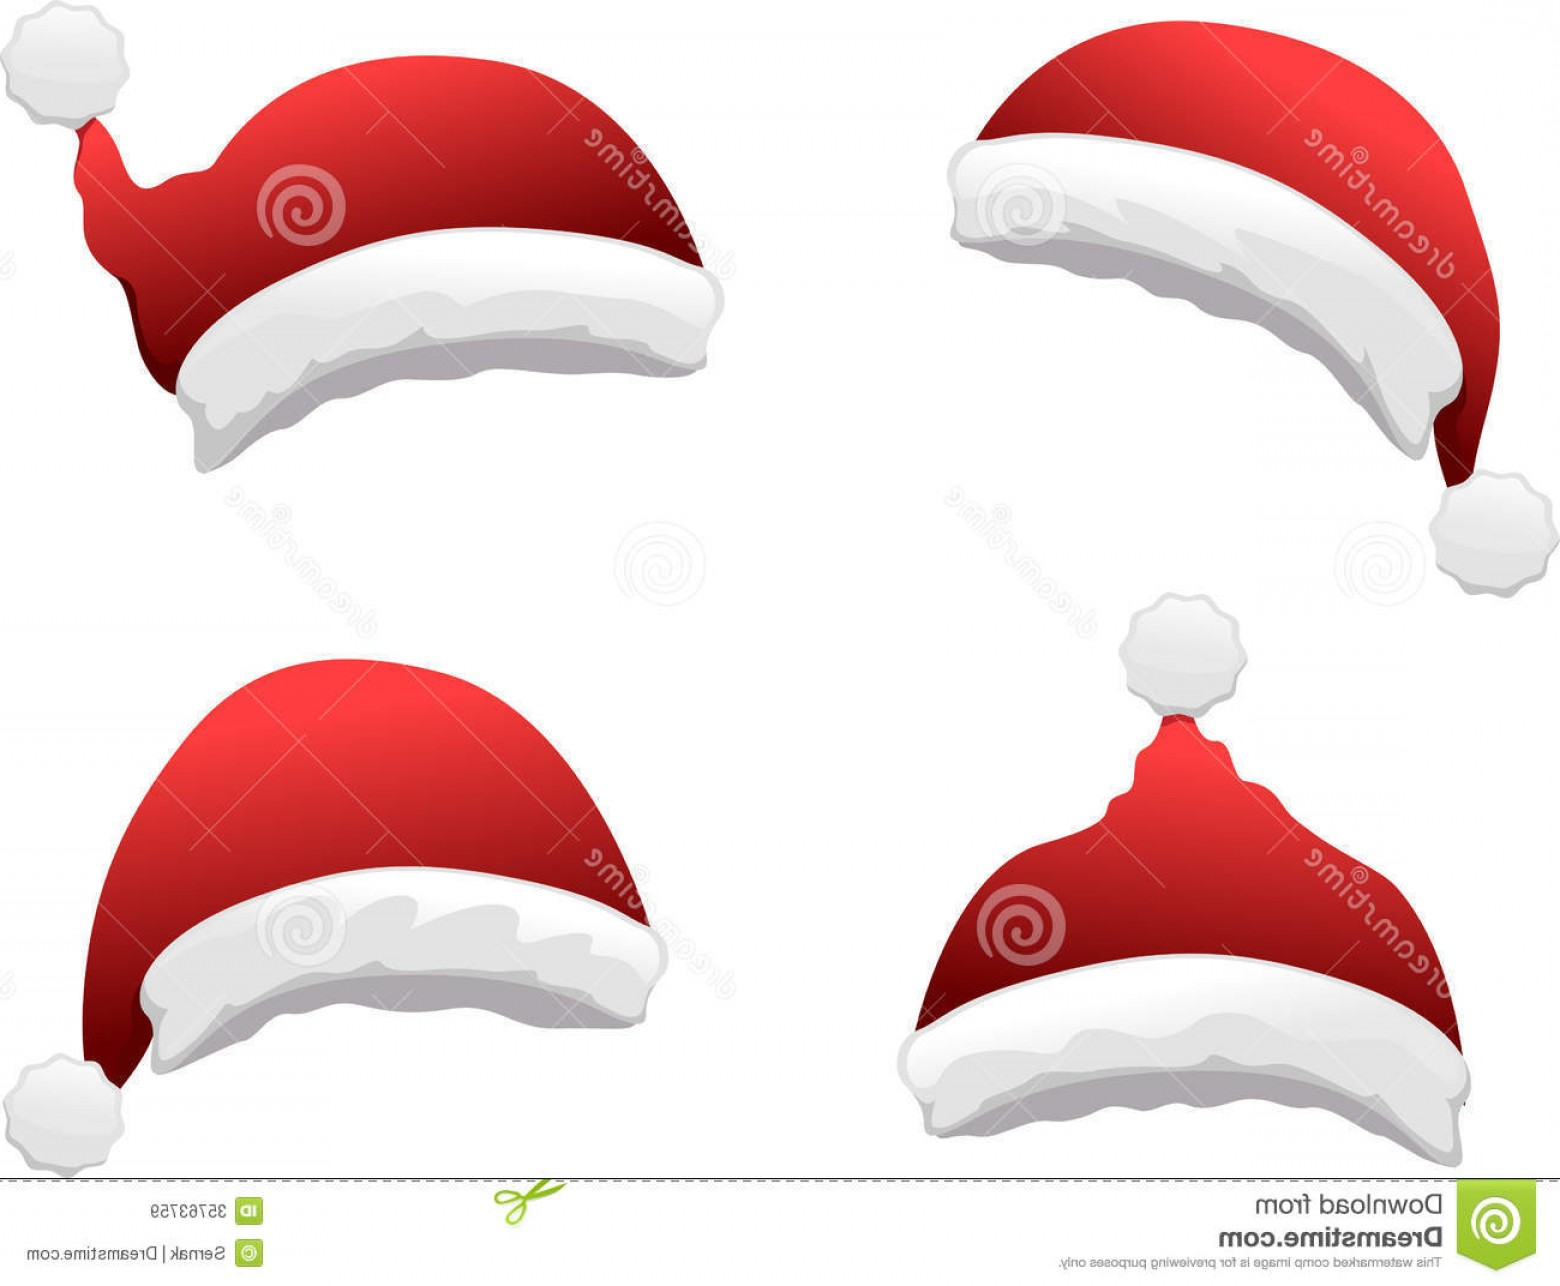 Santa Hat Vector Logo: Royalty Free Stock Images Santa Hat Set Vector Illustration Separate Layers Easy Editing Image